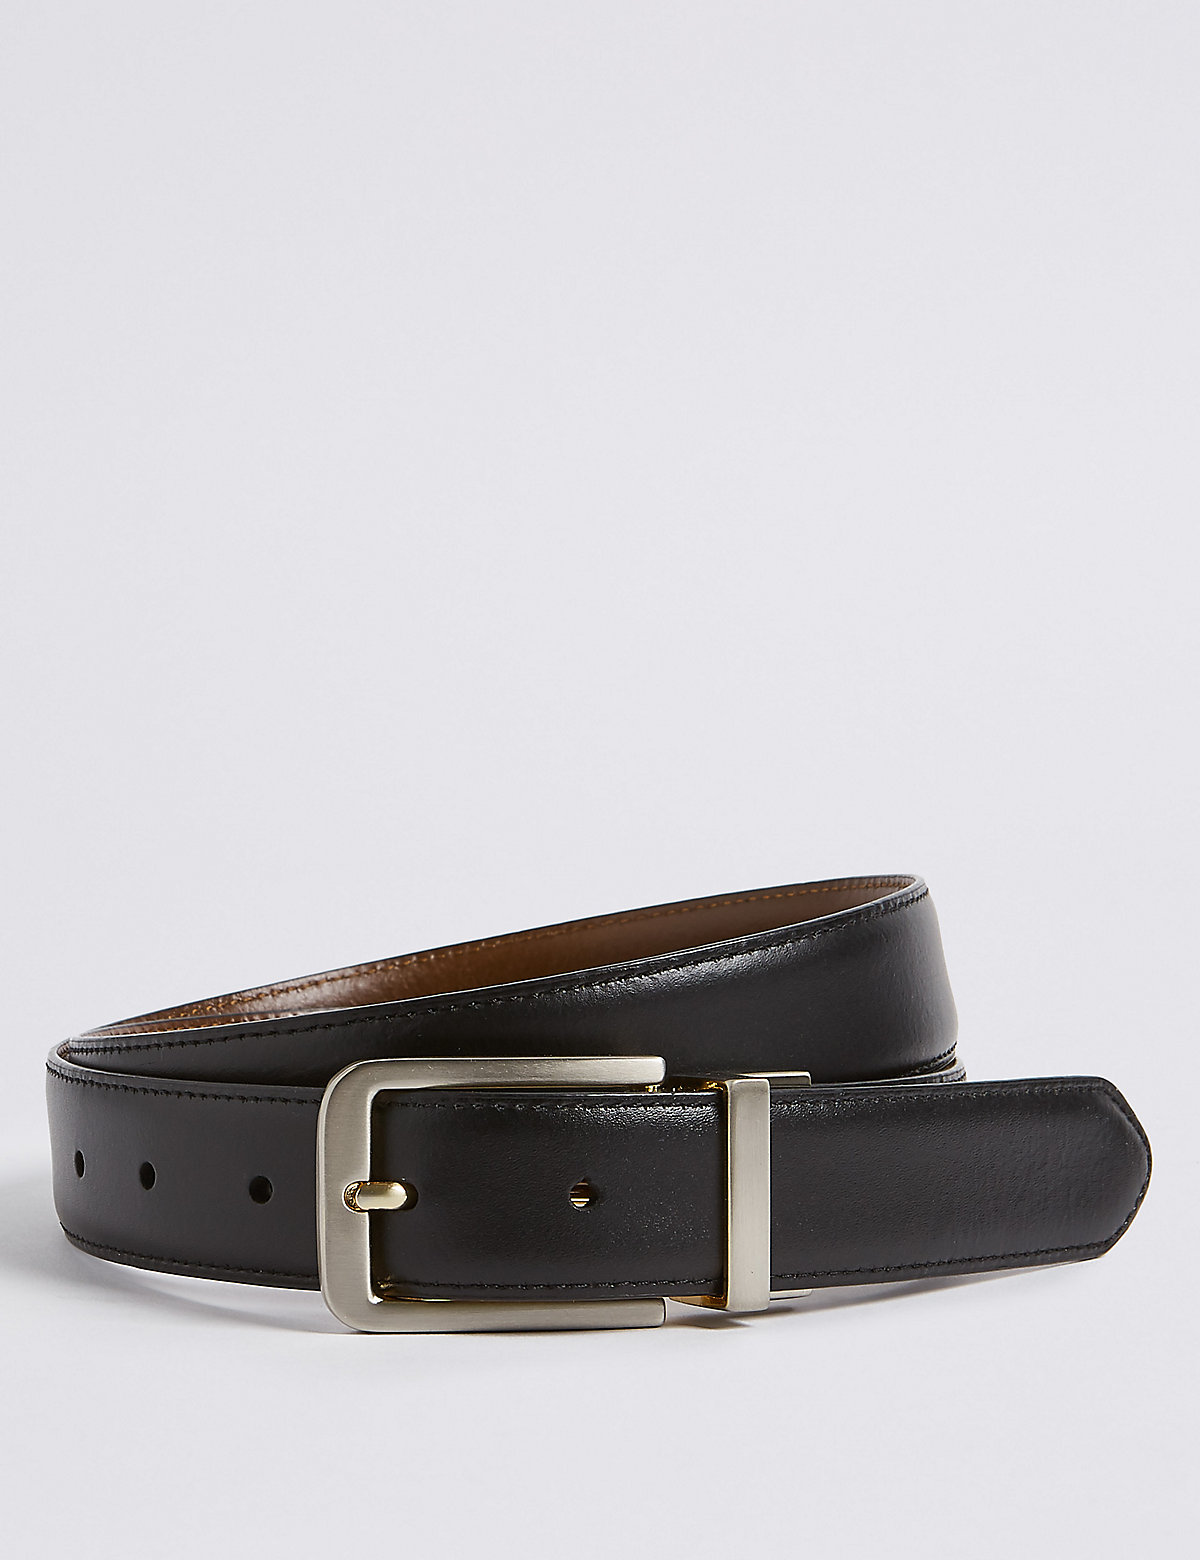 Marks & Spencer Black And Brown Leather Rectangular Buckle Reversible Belt